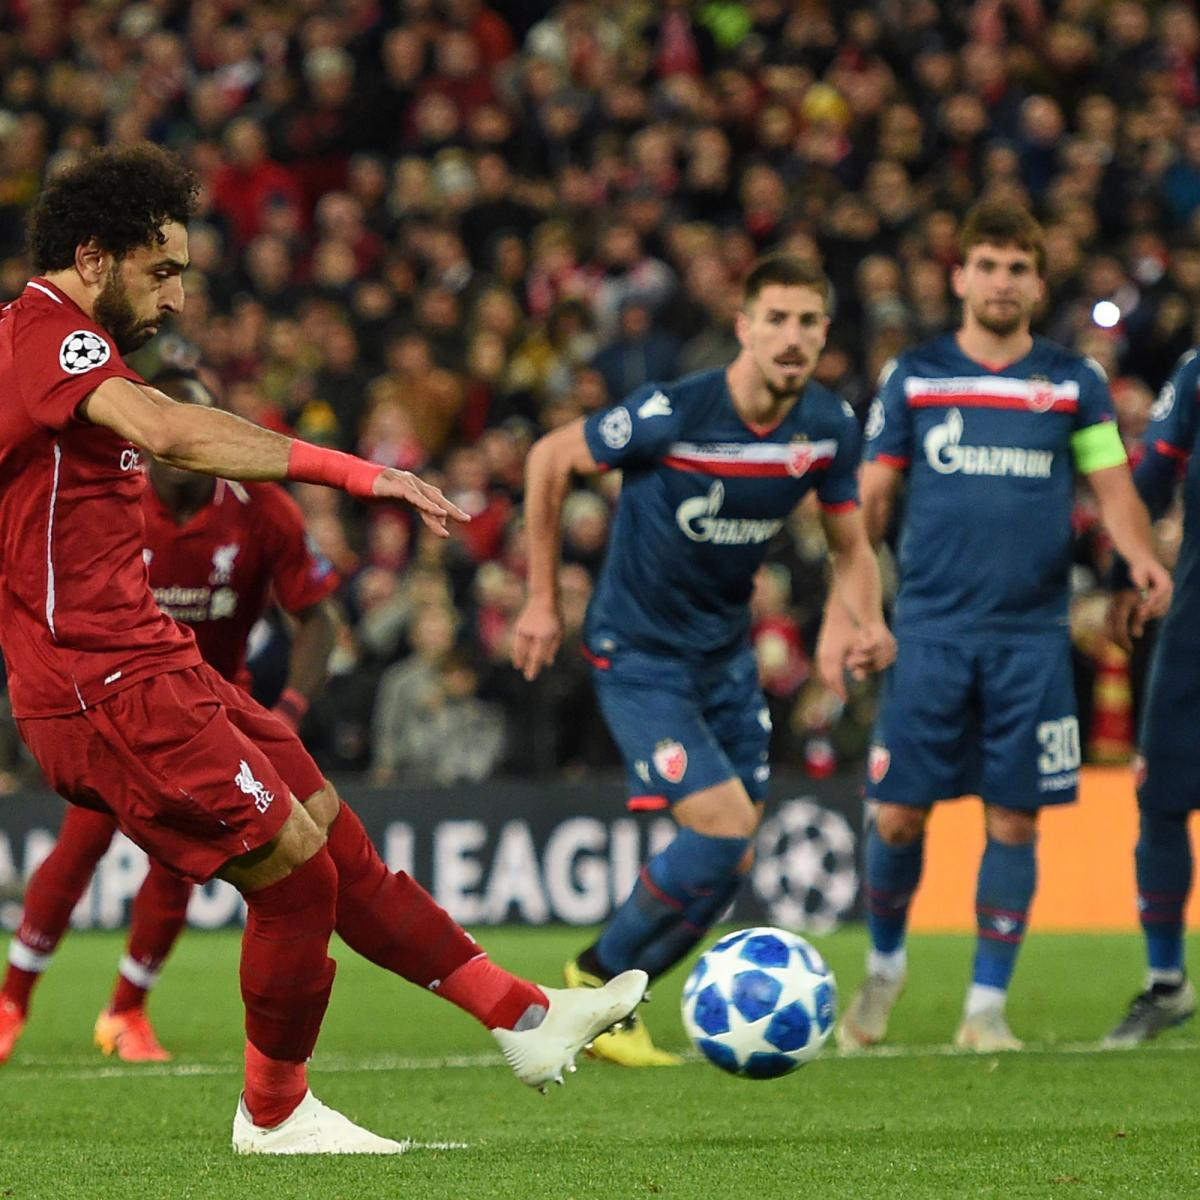 Barcelona Vs Liverpool Odds Live Stream Tv Info For: Red Star Belgrade Vs. Liverpool: UCL Match Odds, Preview